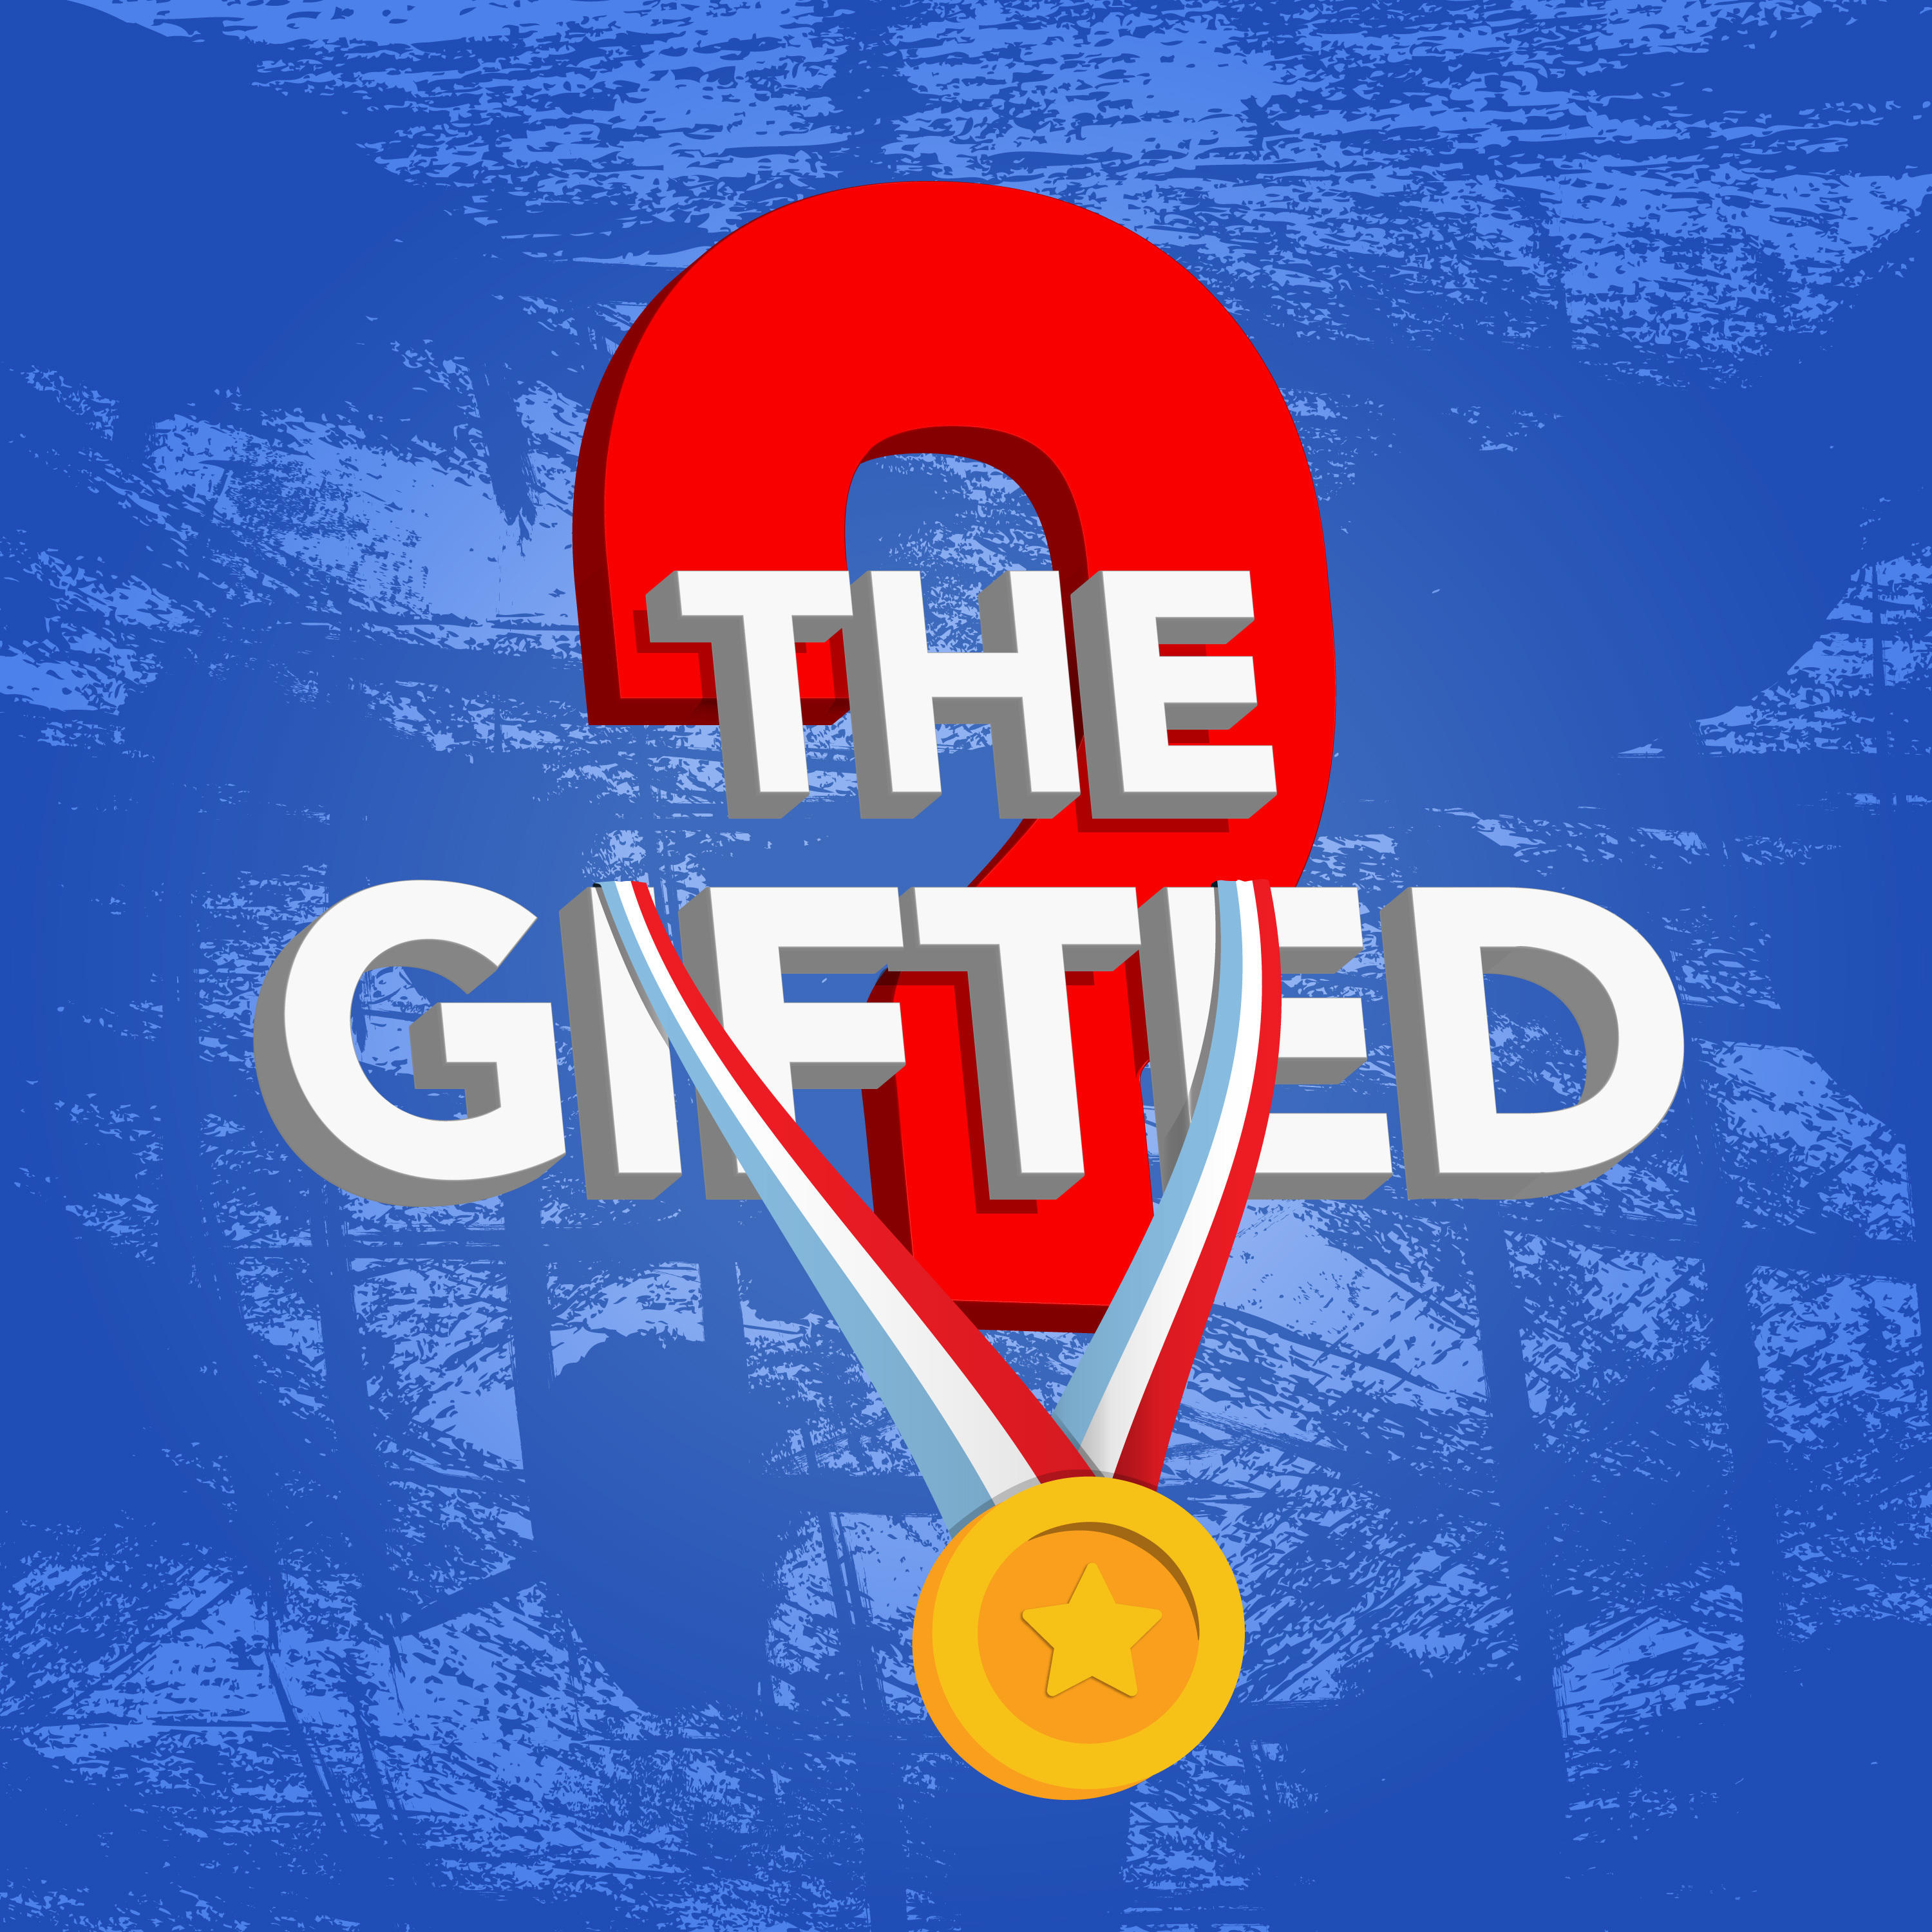 The Gifted?